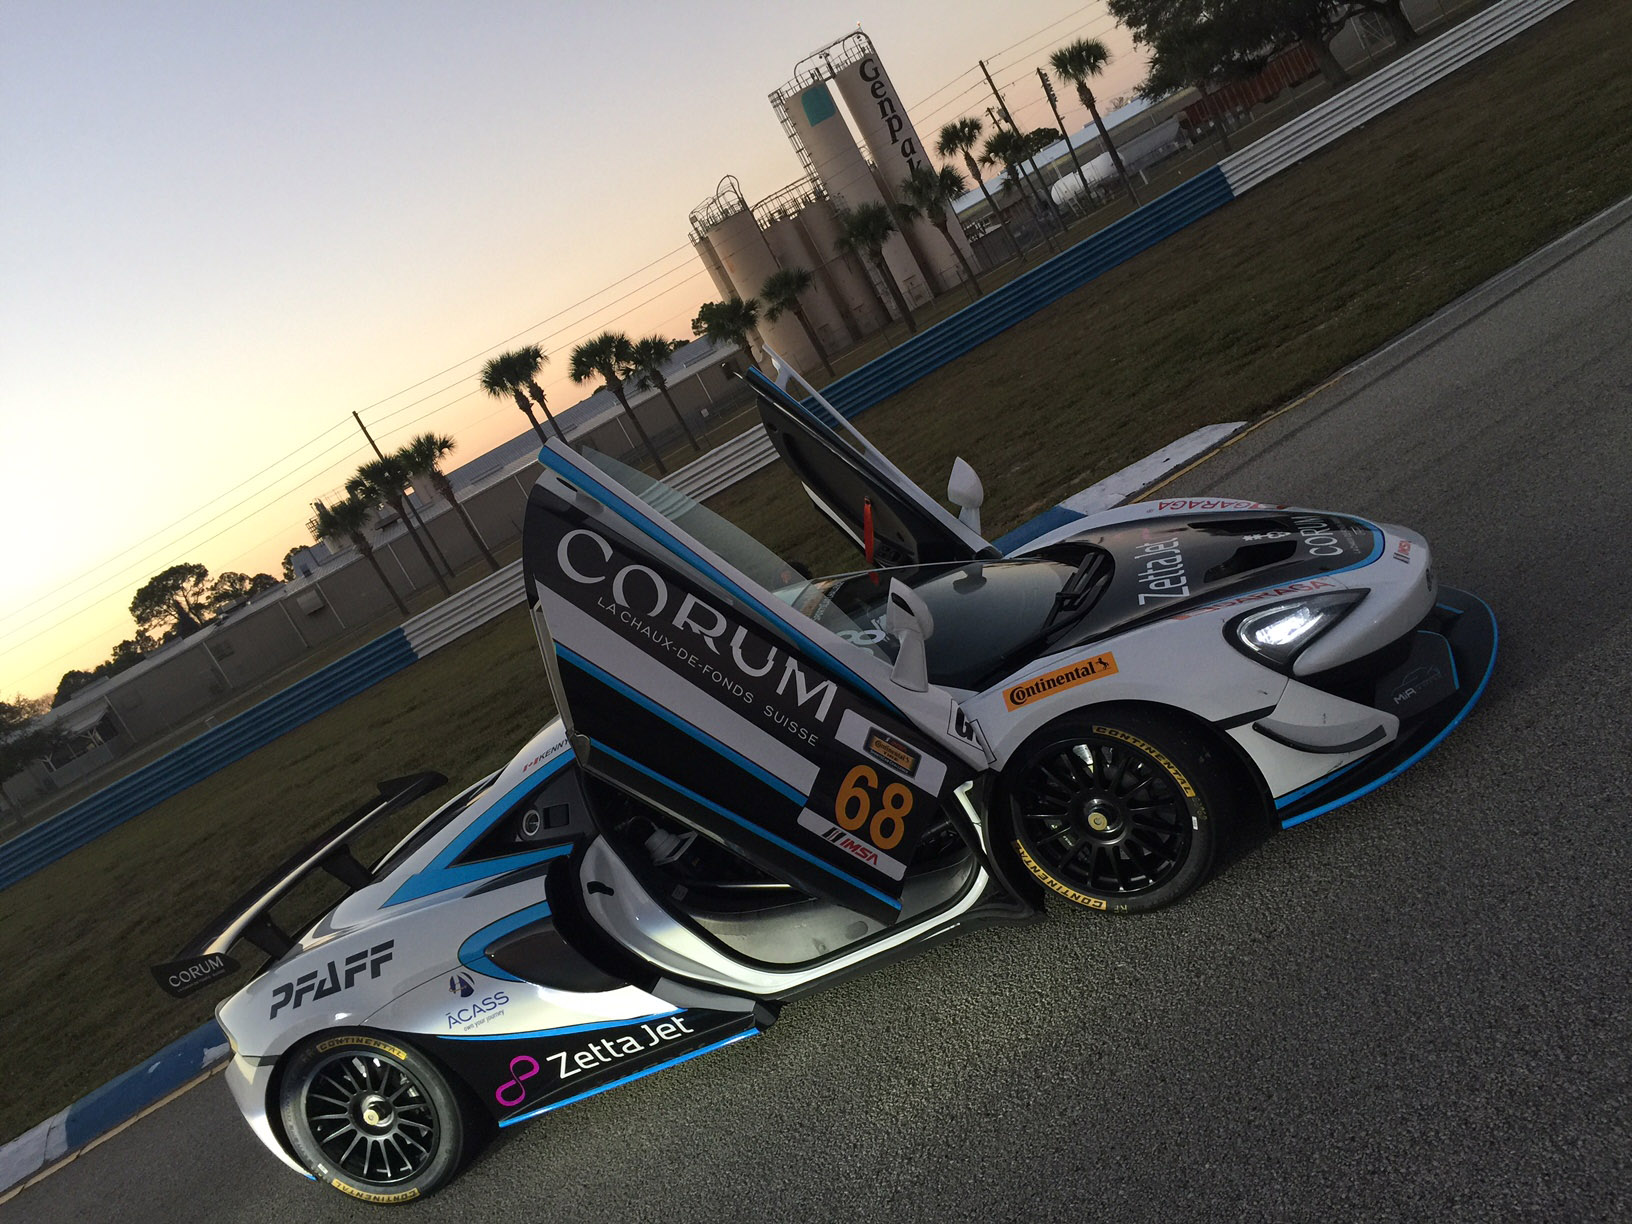 Corum Watches And Zetta Jet McLaren GT4s For The Motorsports In Action Team!